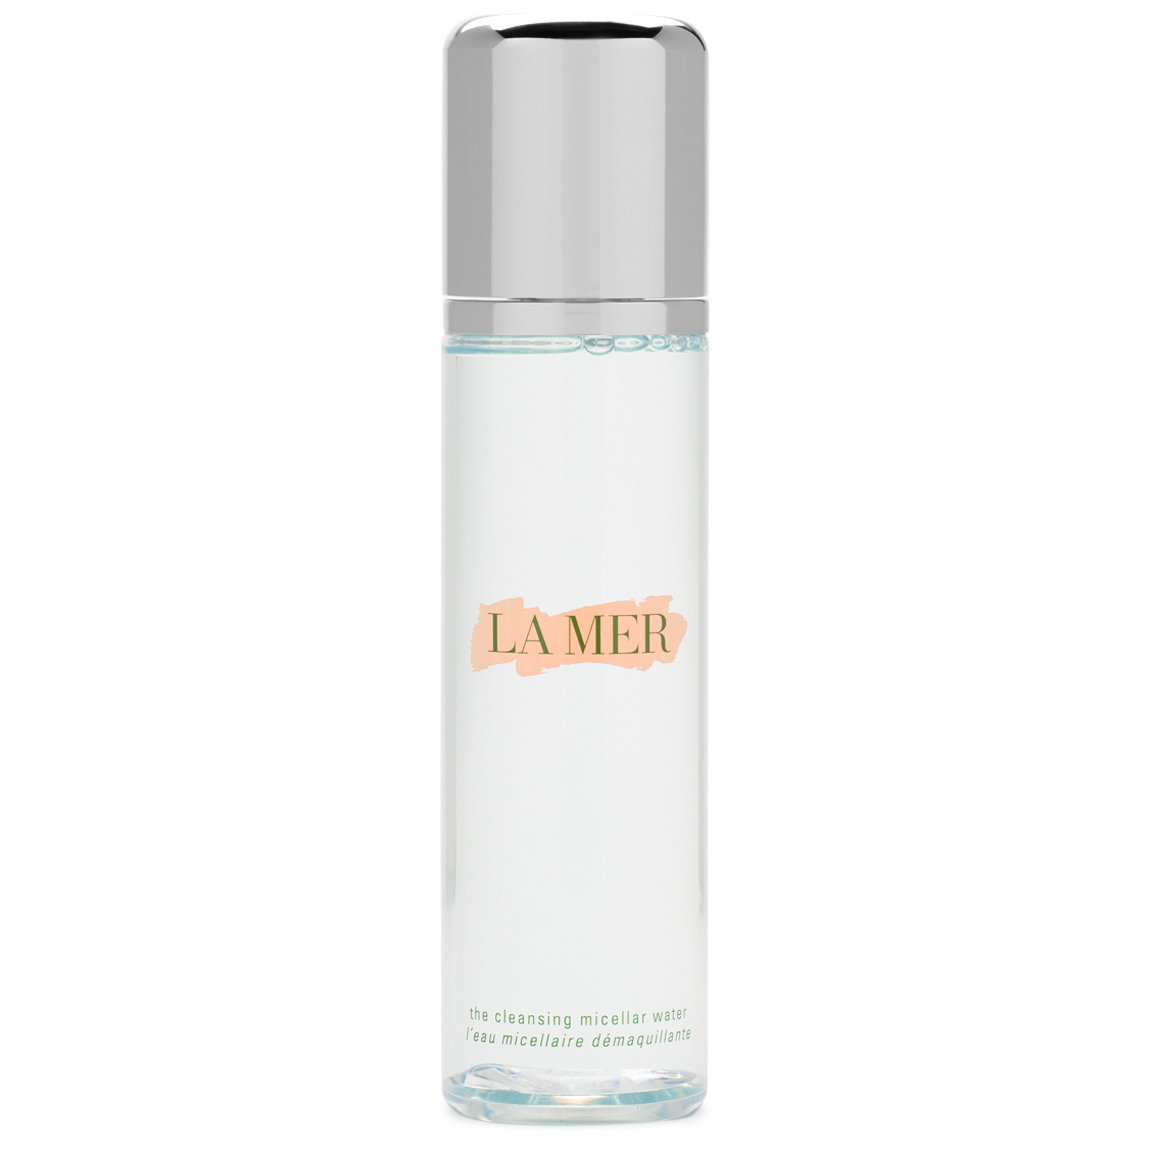 La Mer The Cleansing Micellar Water 6.7 oz product swatch.